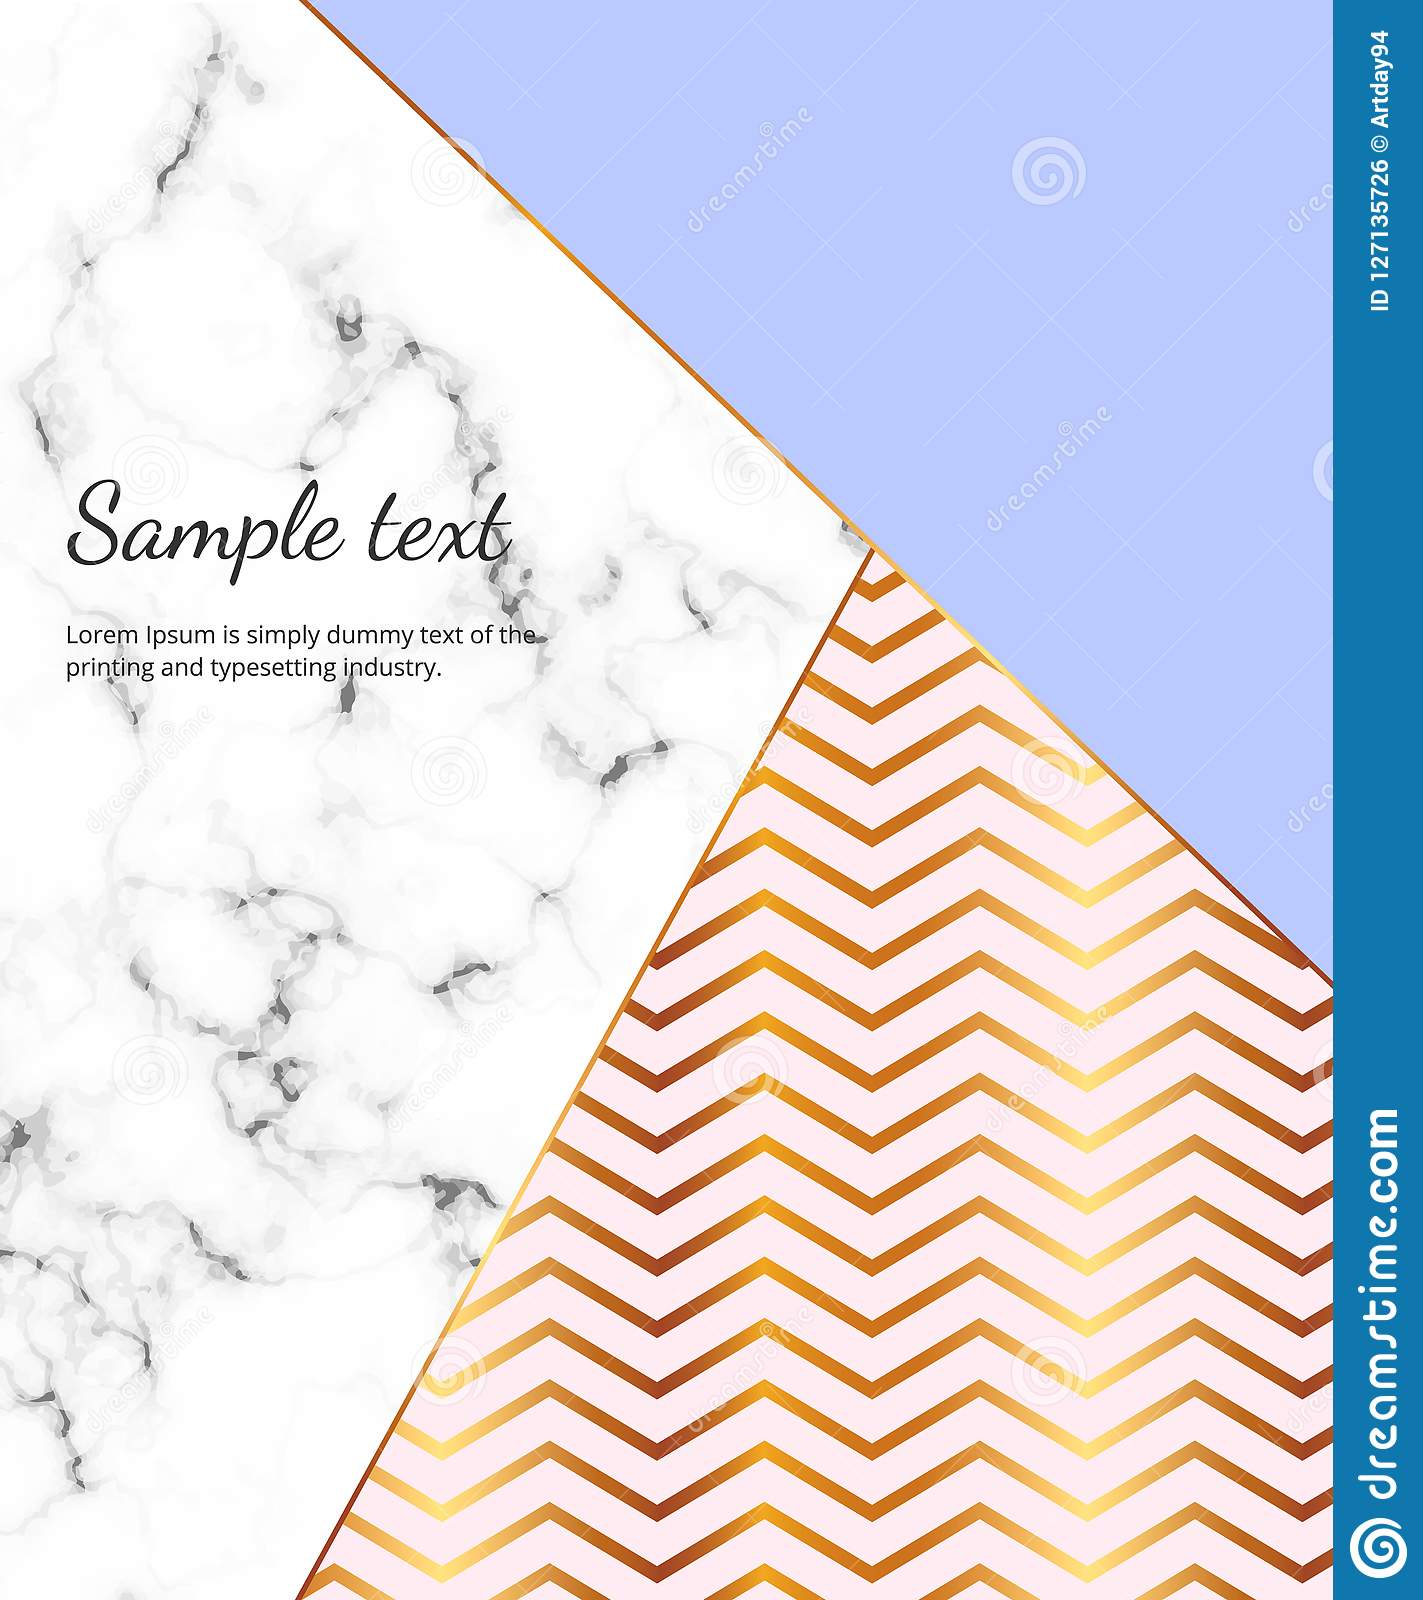 Geometric Design Poster With Gold Lines Blue And Pink Colors And Marble Texture Background Template For Design Invitation Card Stock Illustration Illustration Of Pastel Graphic 127135726